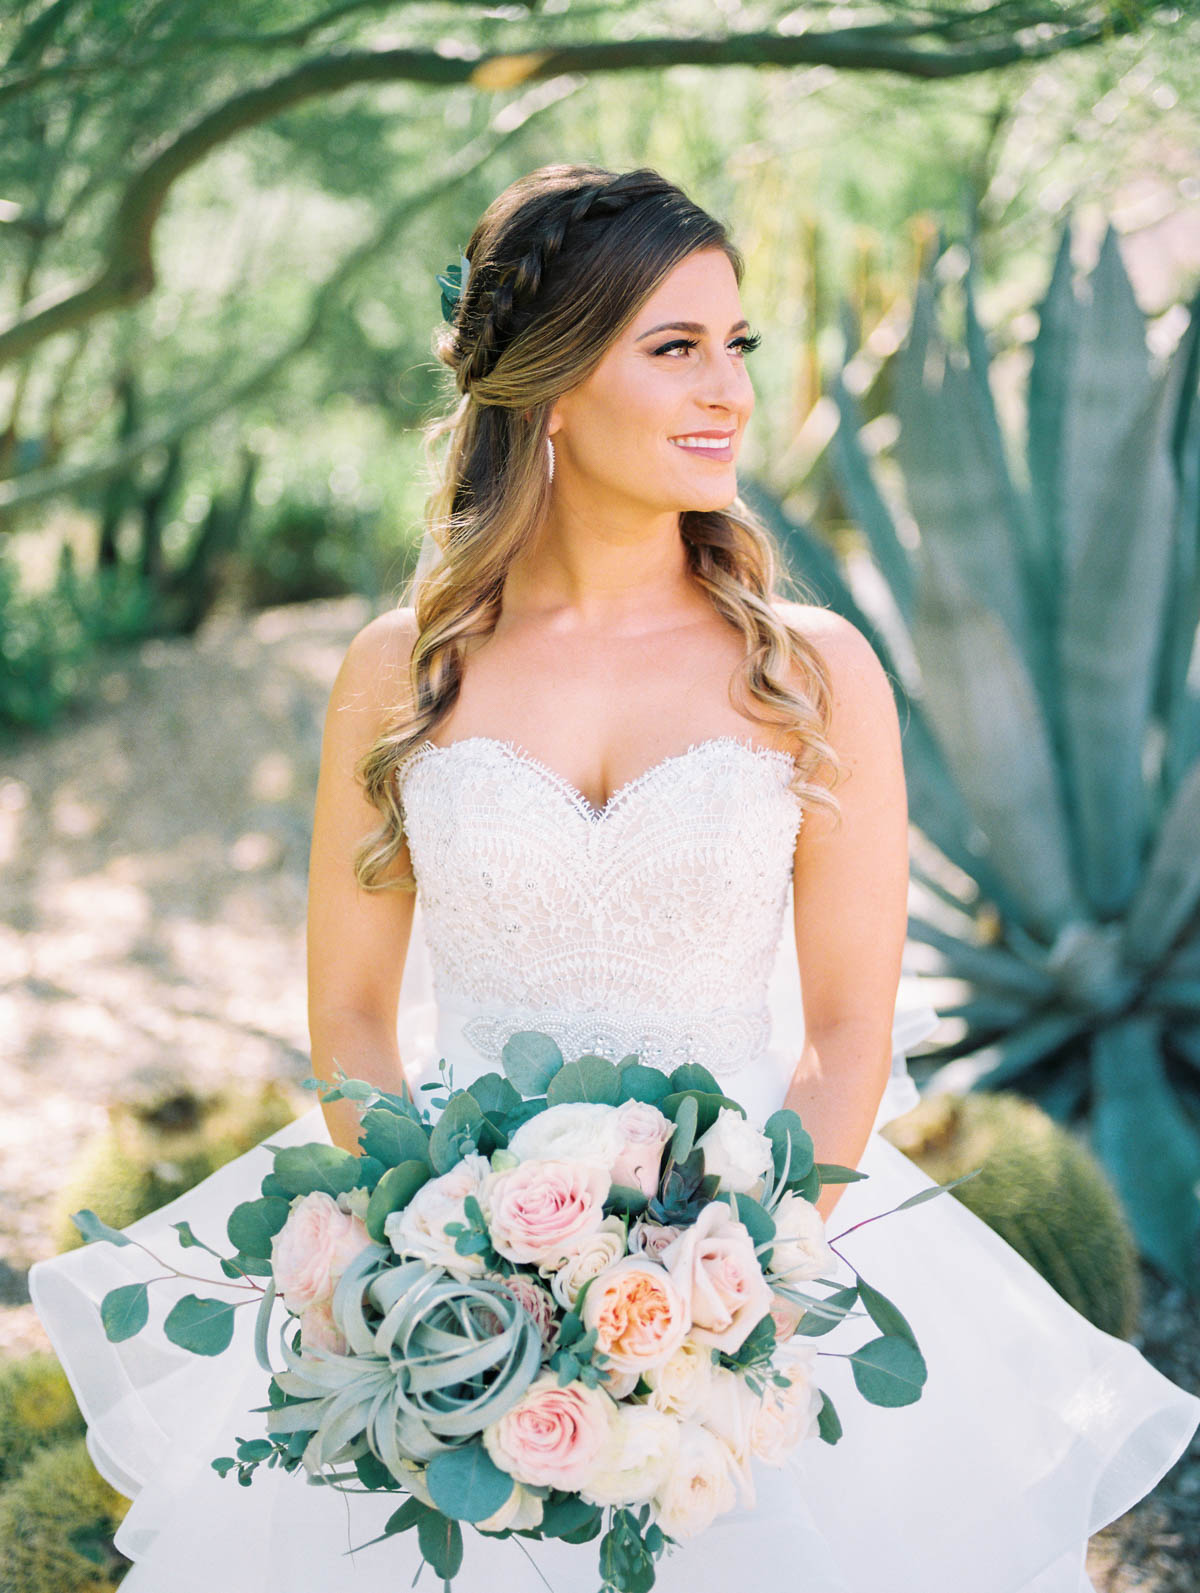 Desert bride captured by Tucson Wedding Photographers Betsy & John